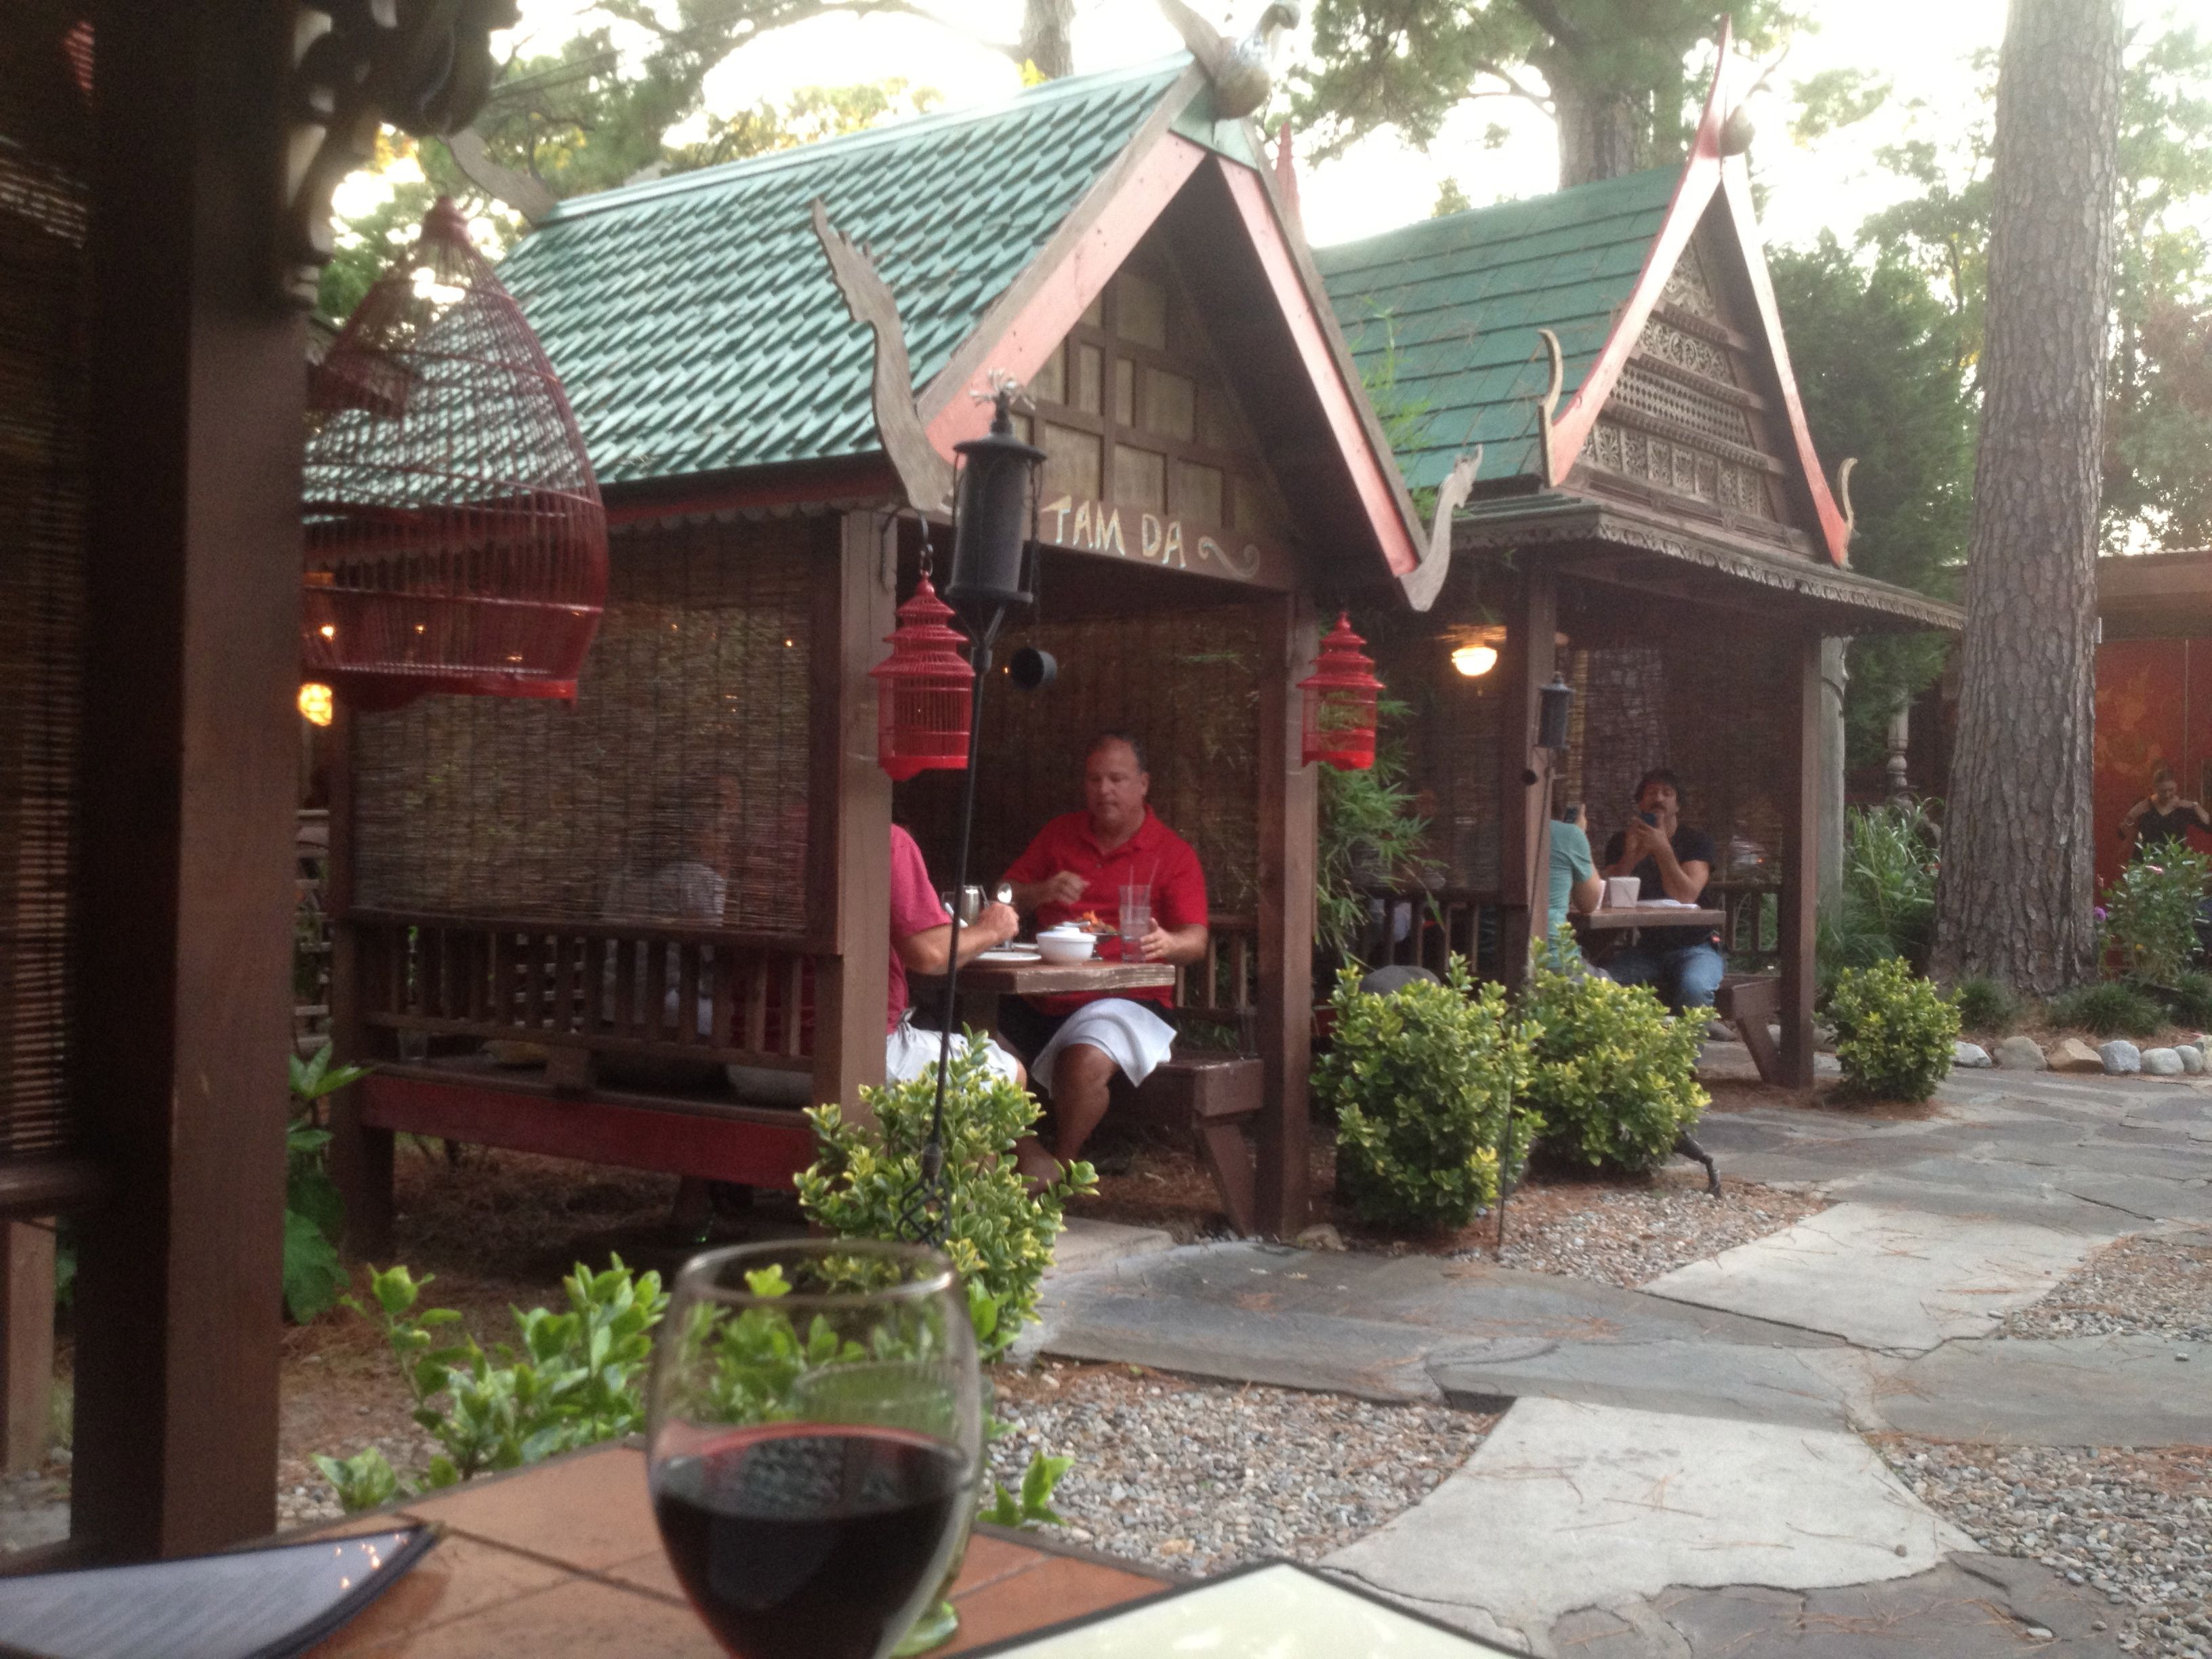 Indochine s outdoor seating Wilmington NC Great Thai cuisine